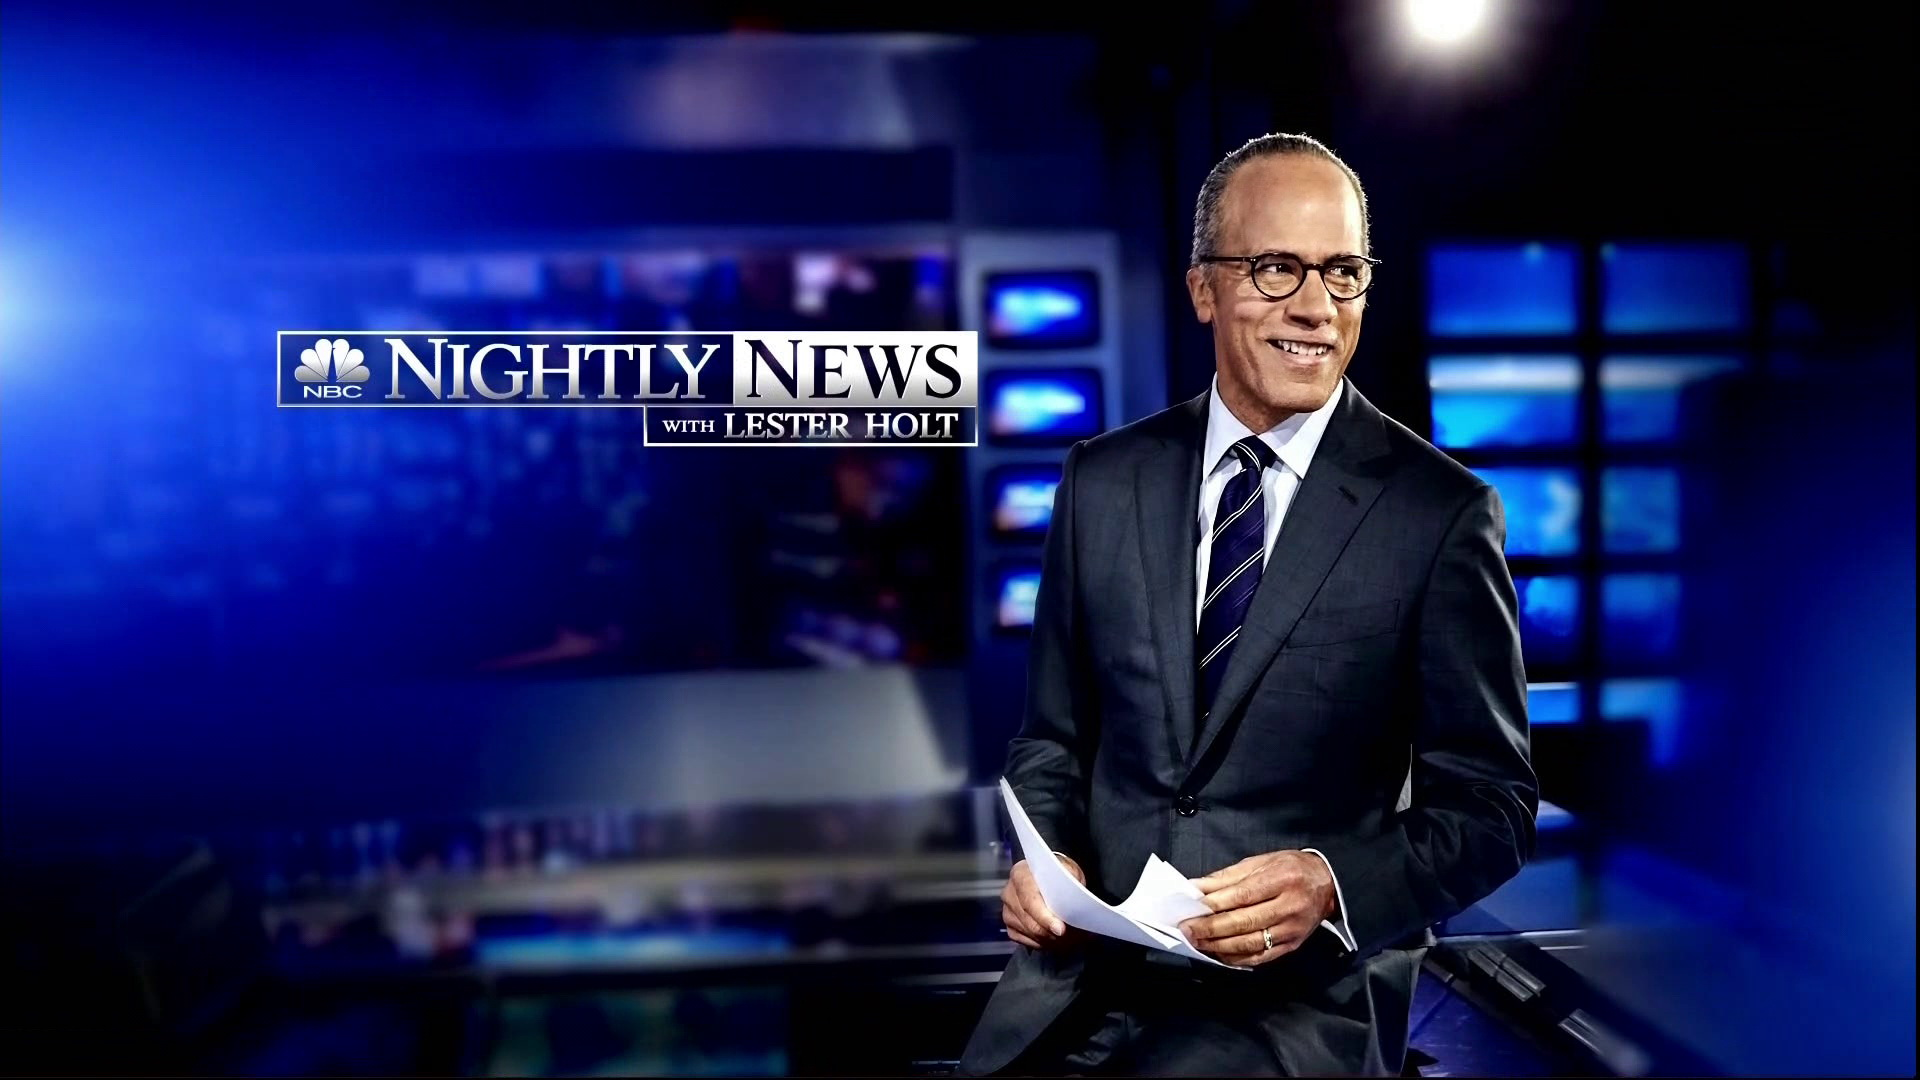 New Your City Nbc Nightly News